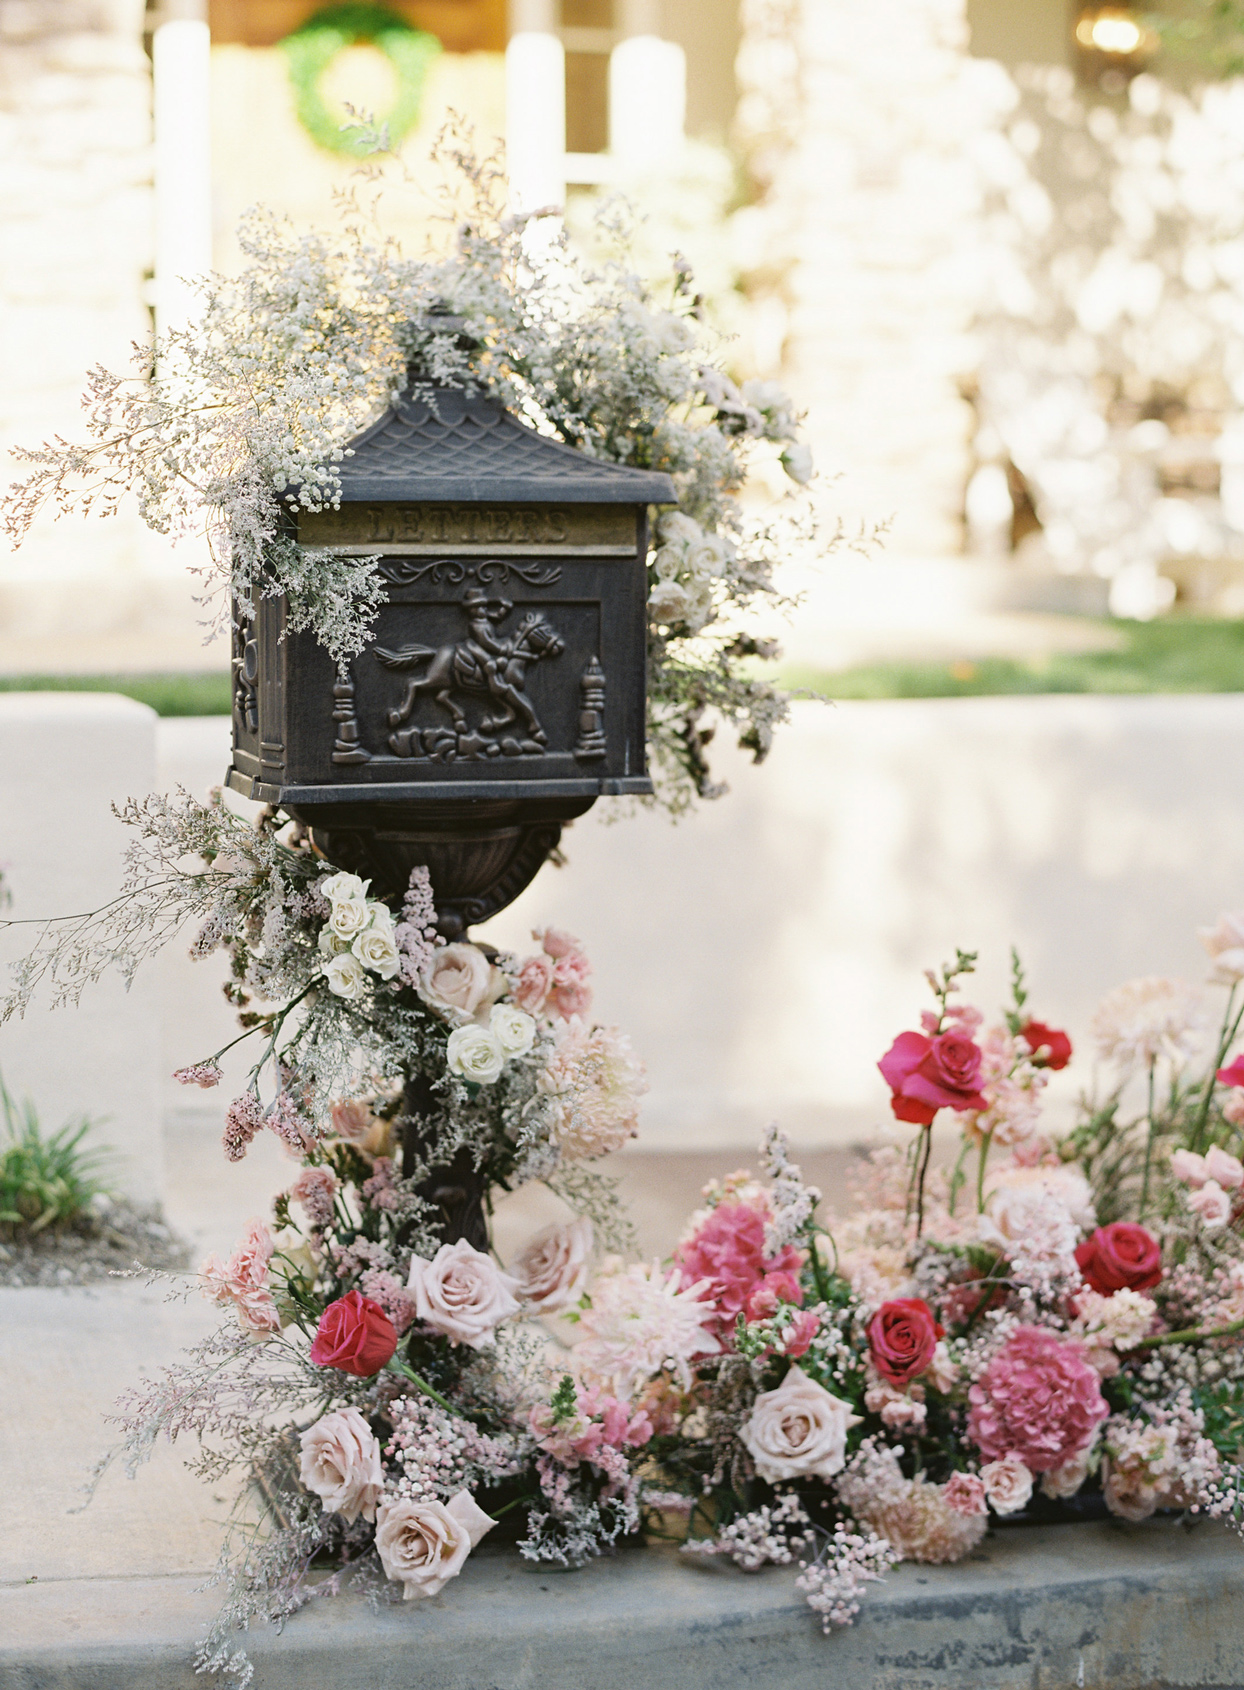 pink floral display on antique black mailbox